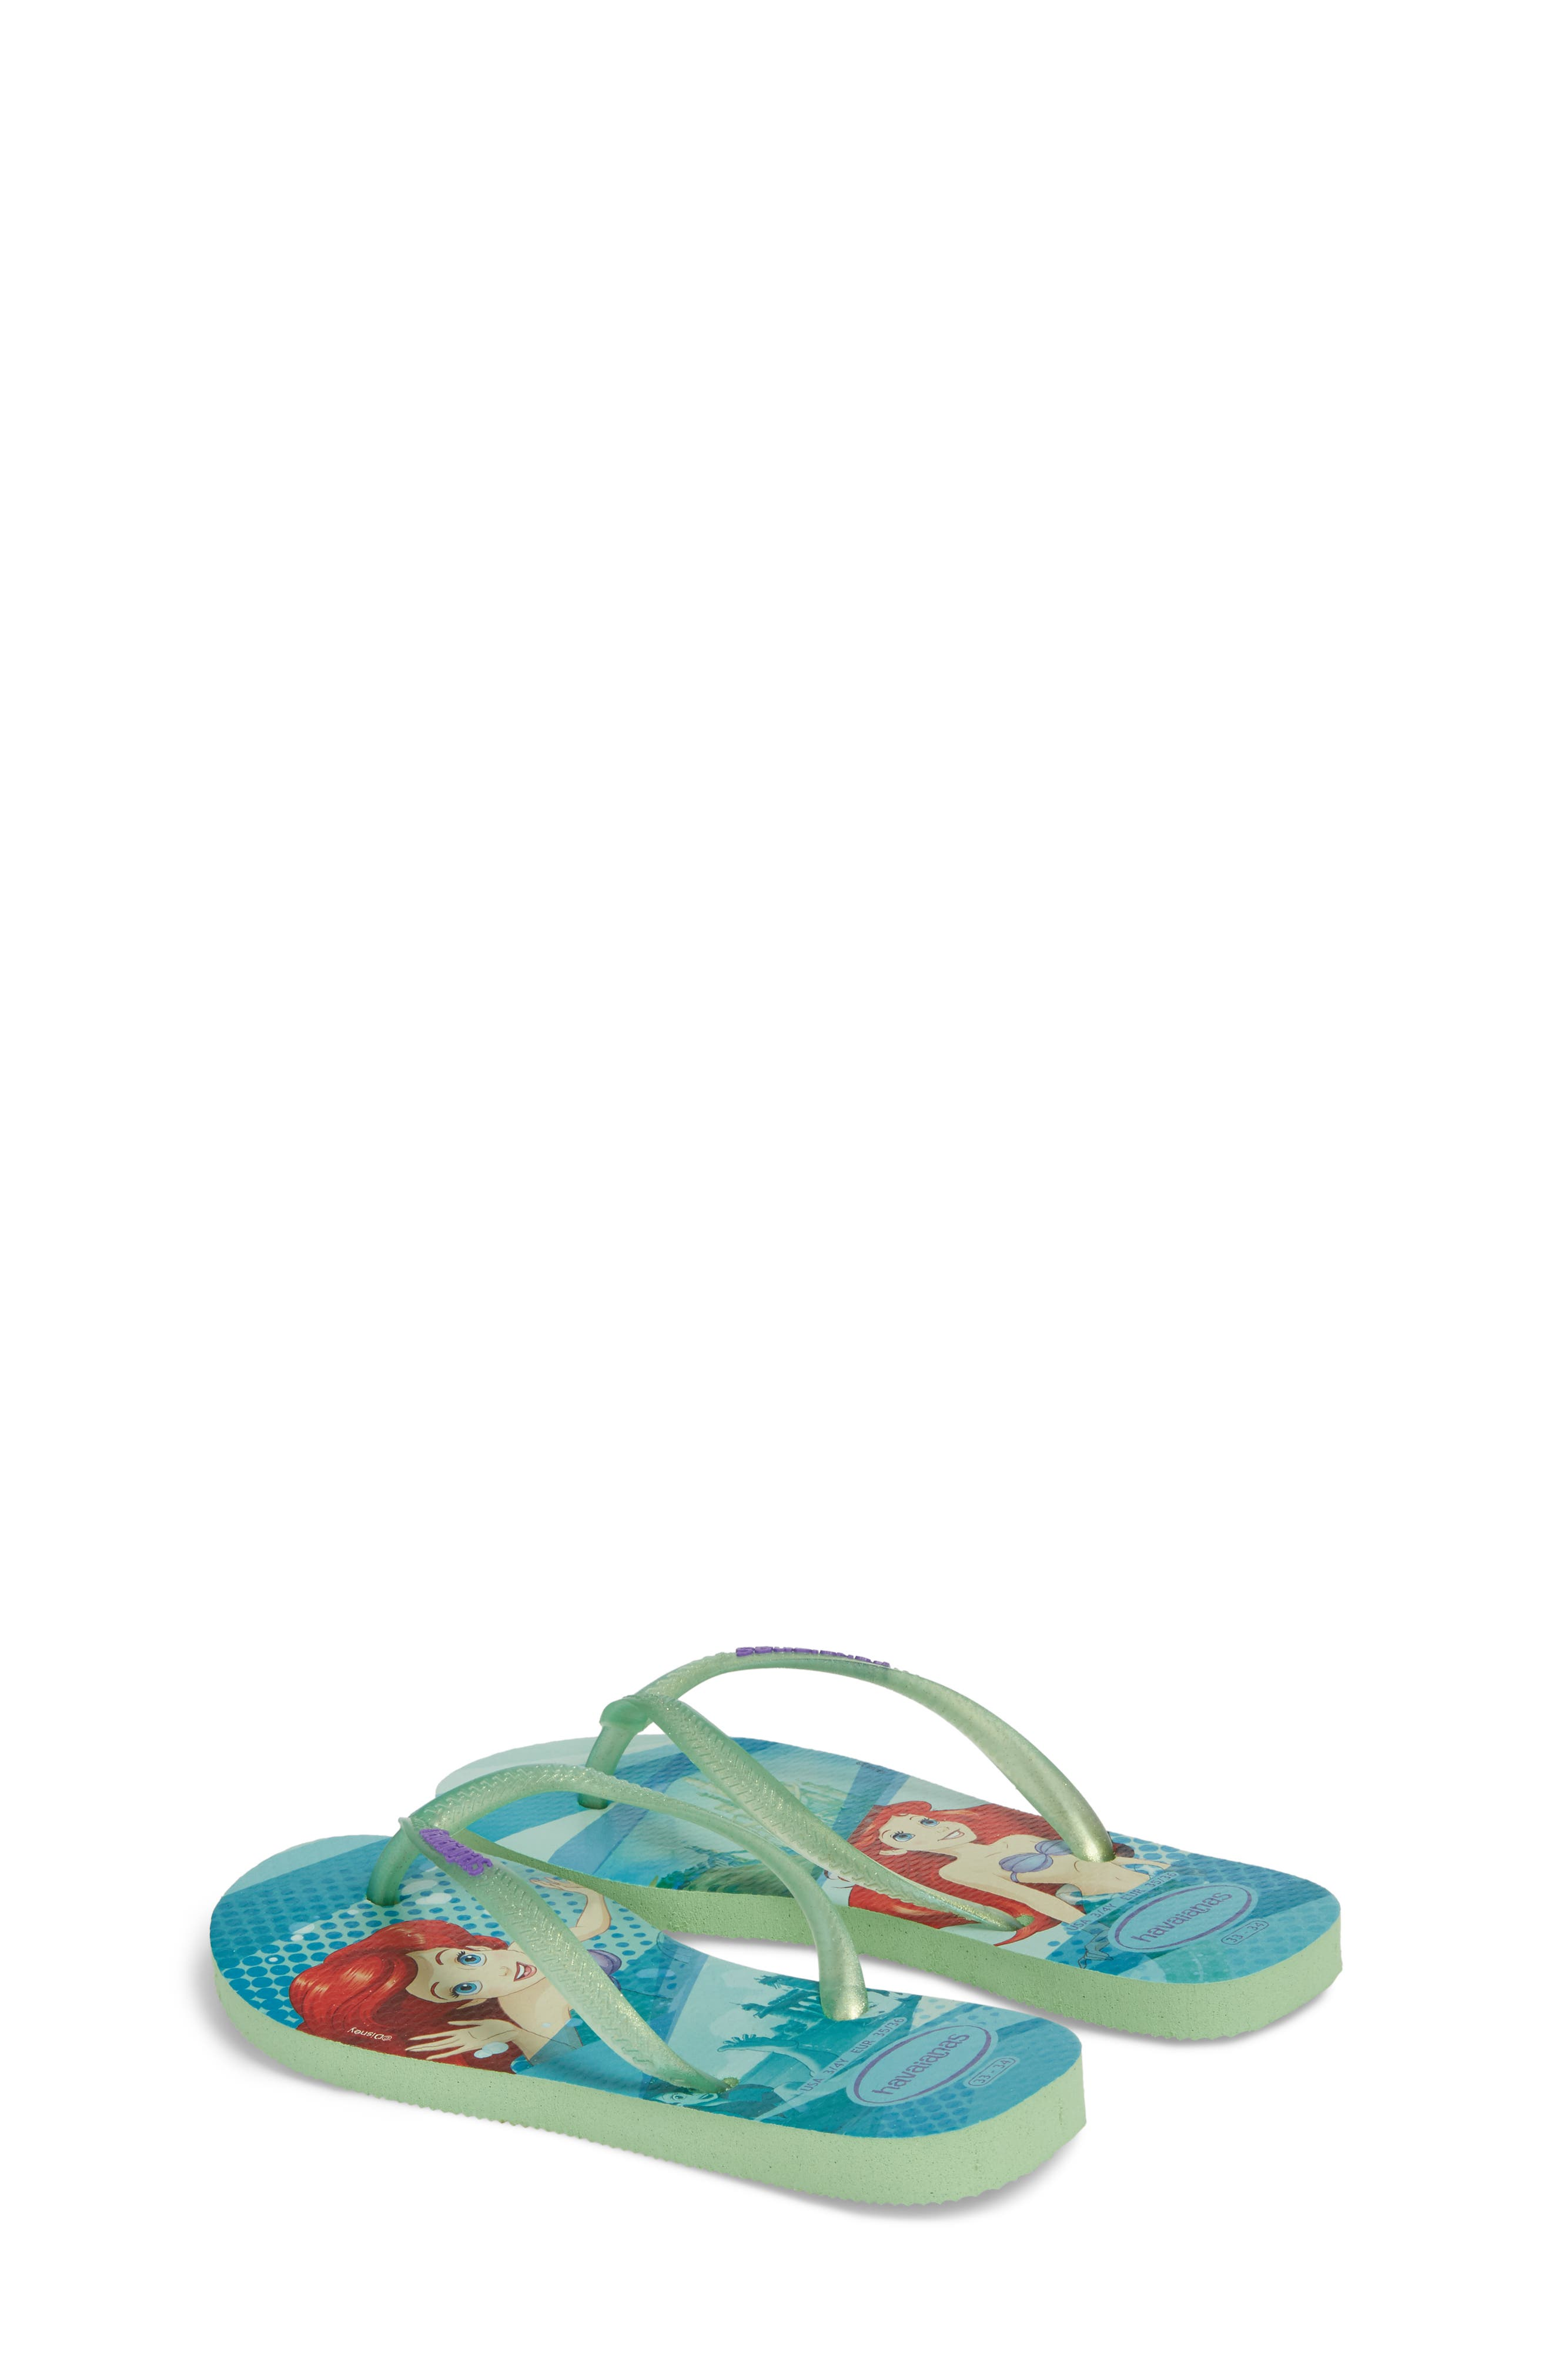 'Disney Princess' Flip Flops,                             Alternate thumbnail 3, color,                             301